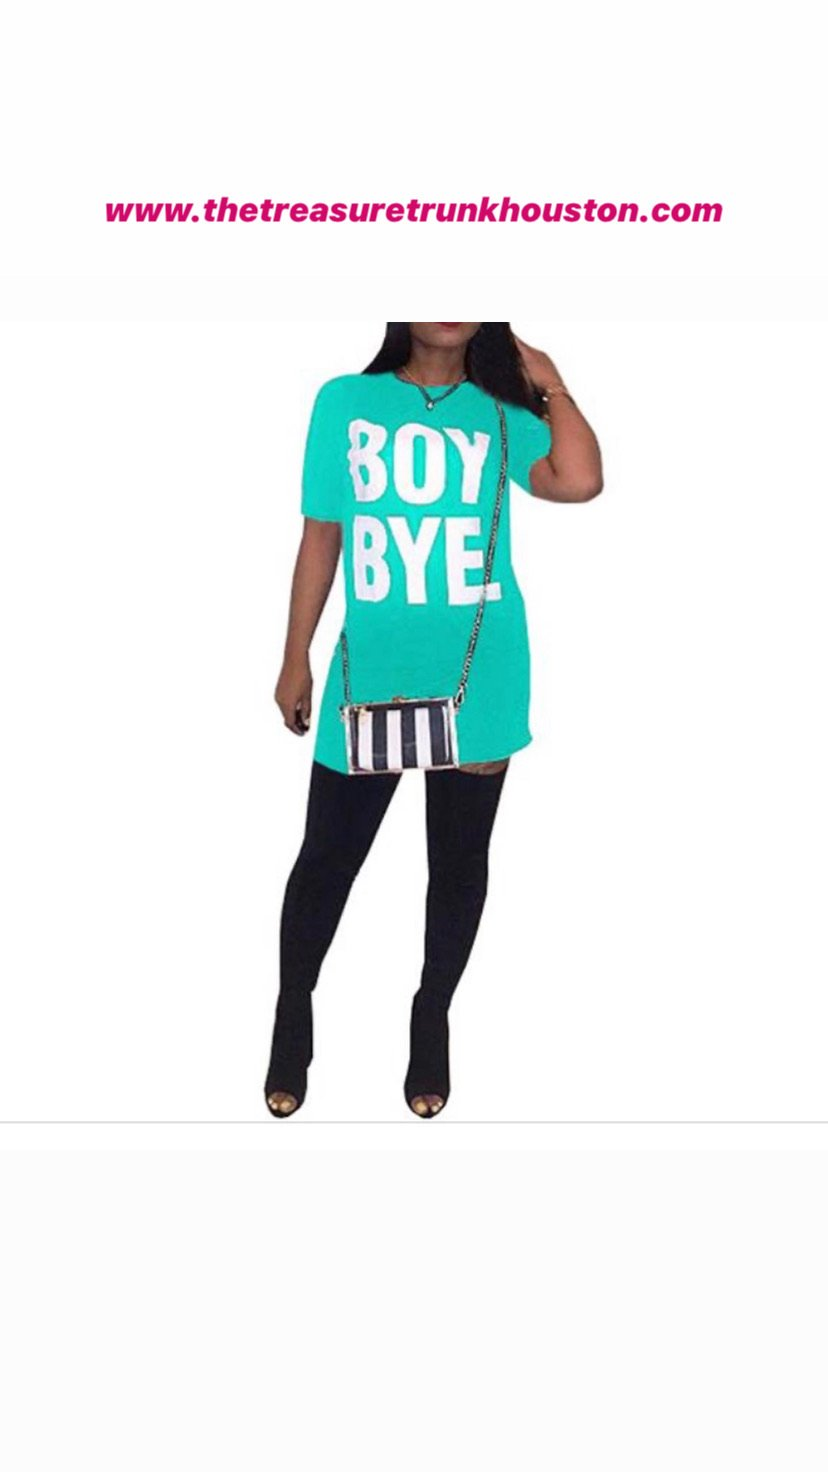 Boy Bye Shirt Dress